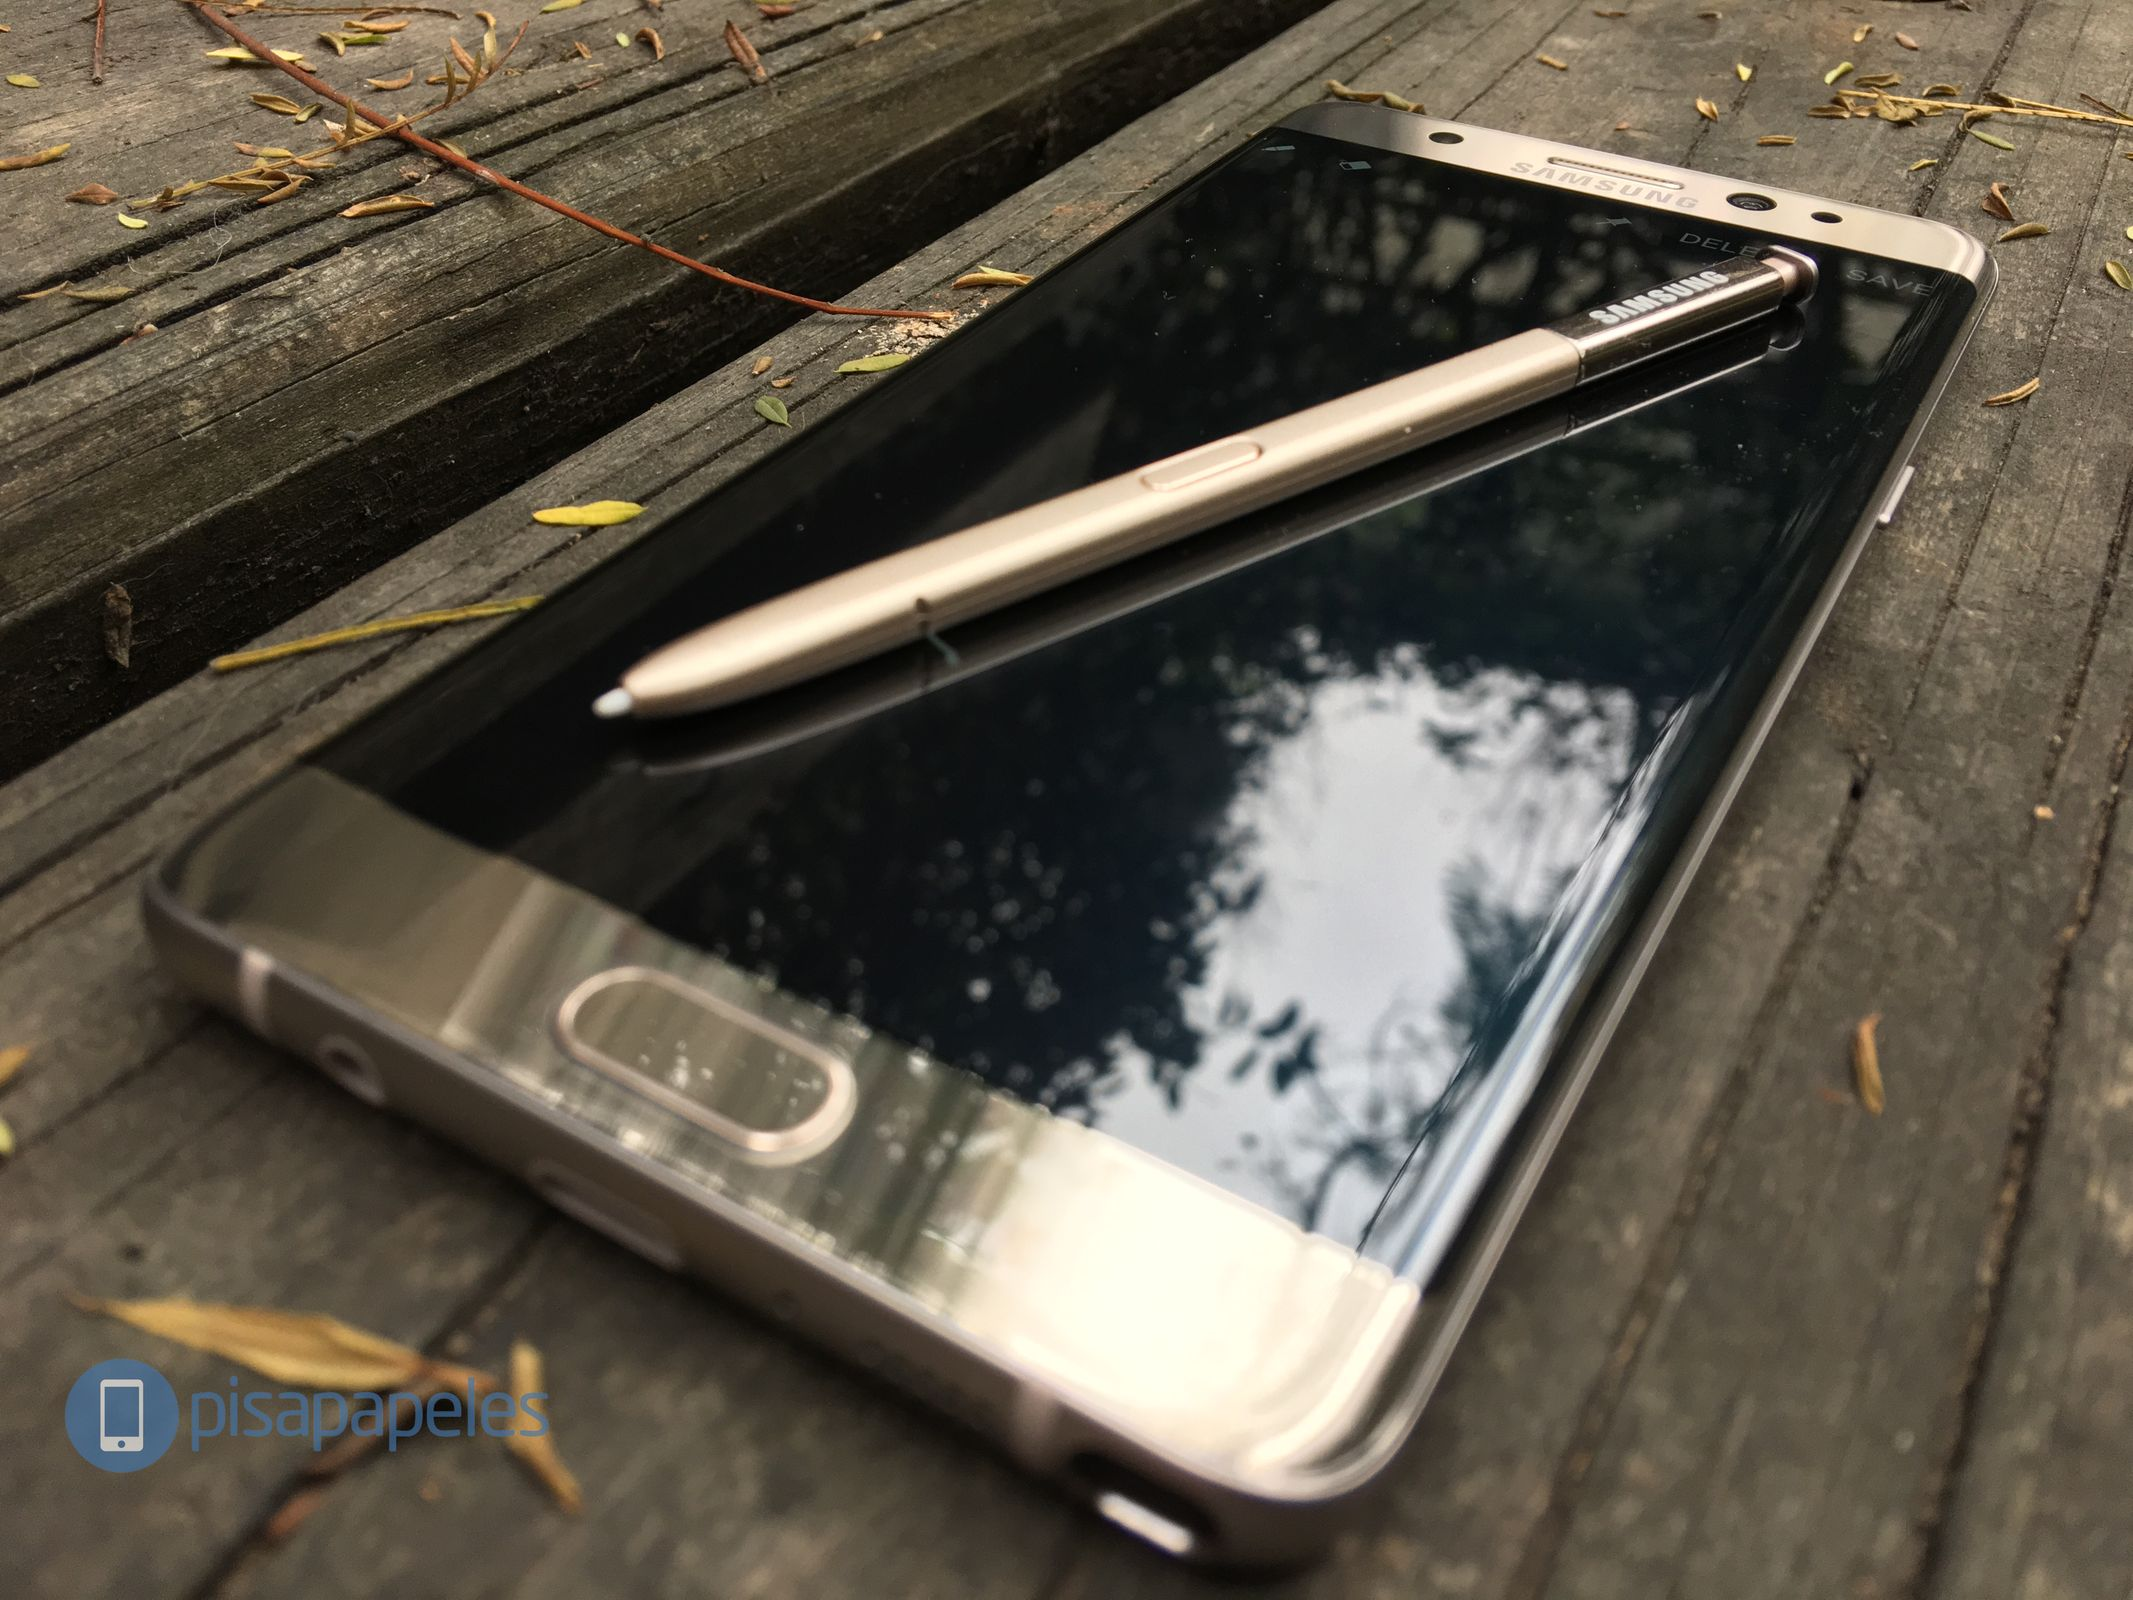 SAMSUNG GALAXY NOTE 7 PISAPAPELES.NET_17